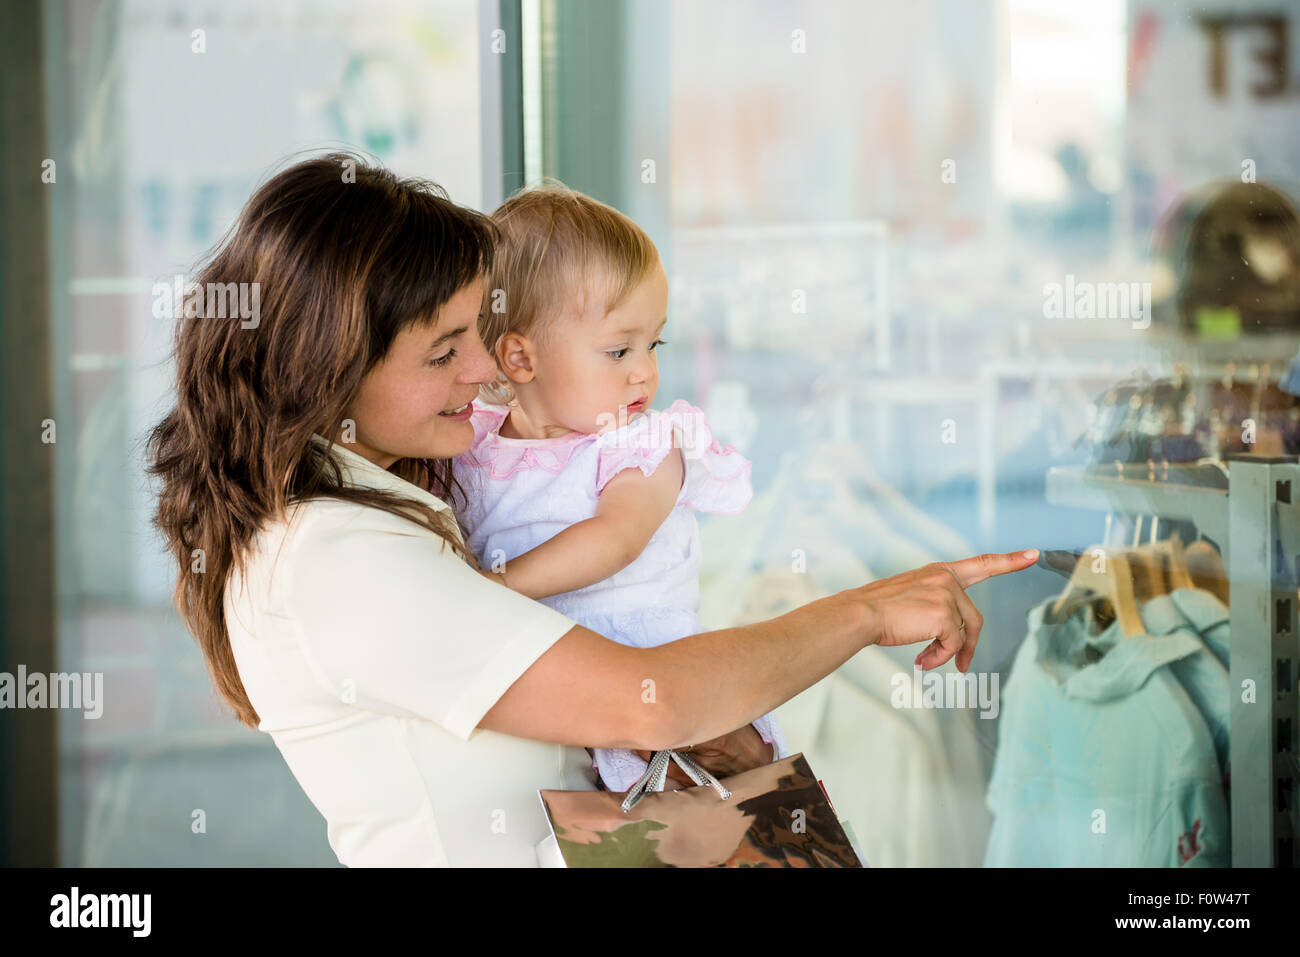 Mother with little girl in white dress looking through shop window - Stock Image